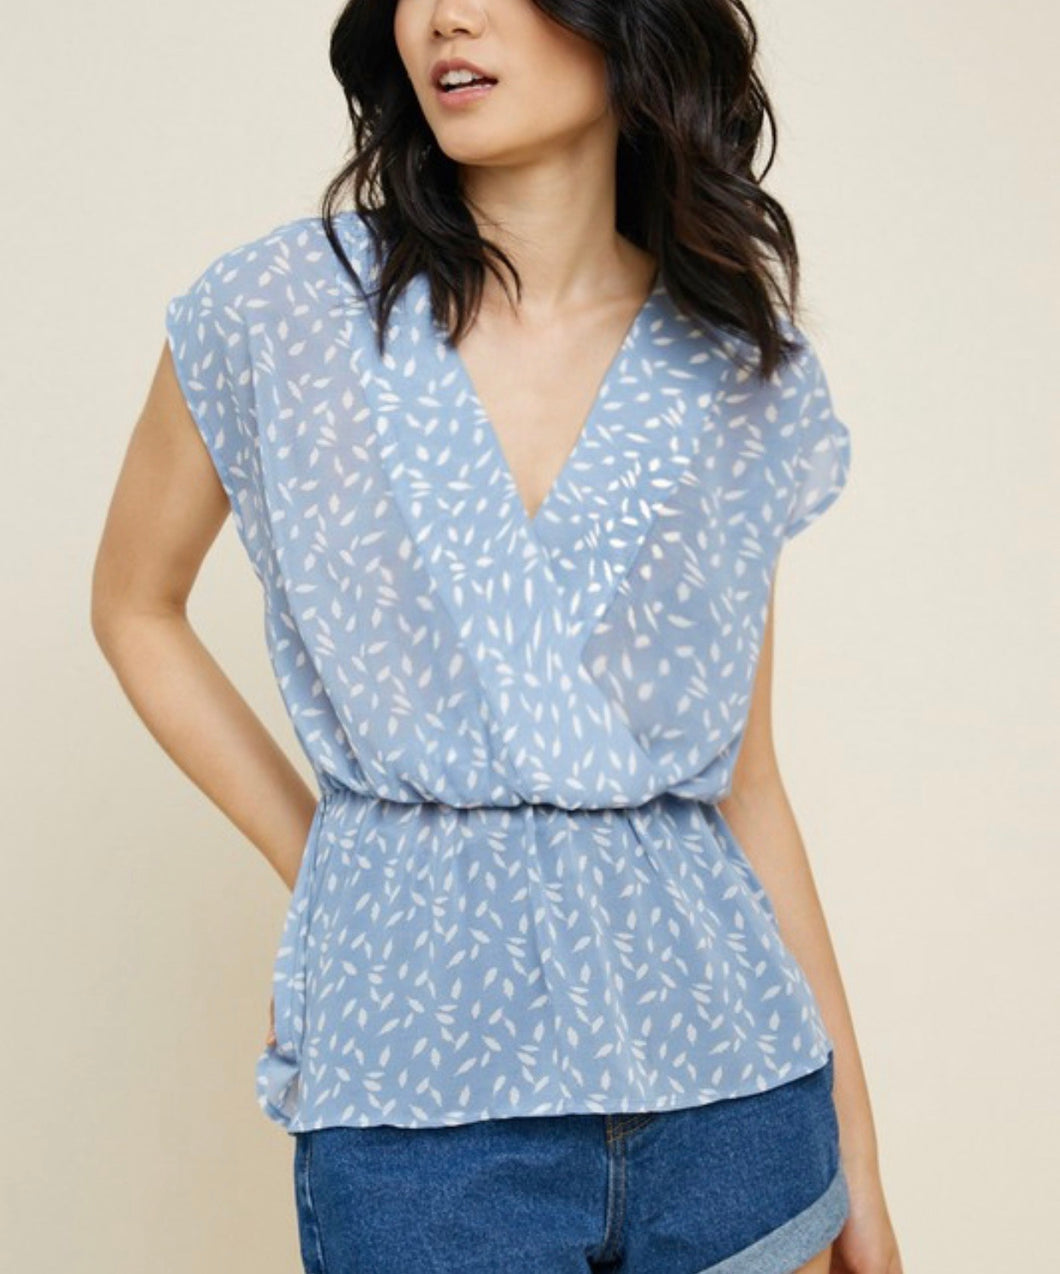 1622 - Printed Rayna Peplum Top